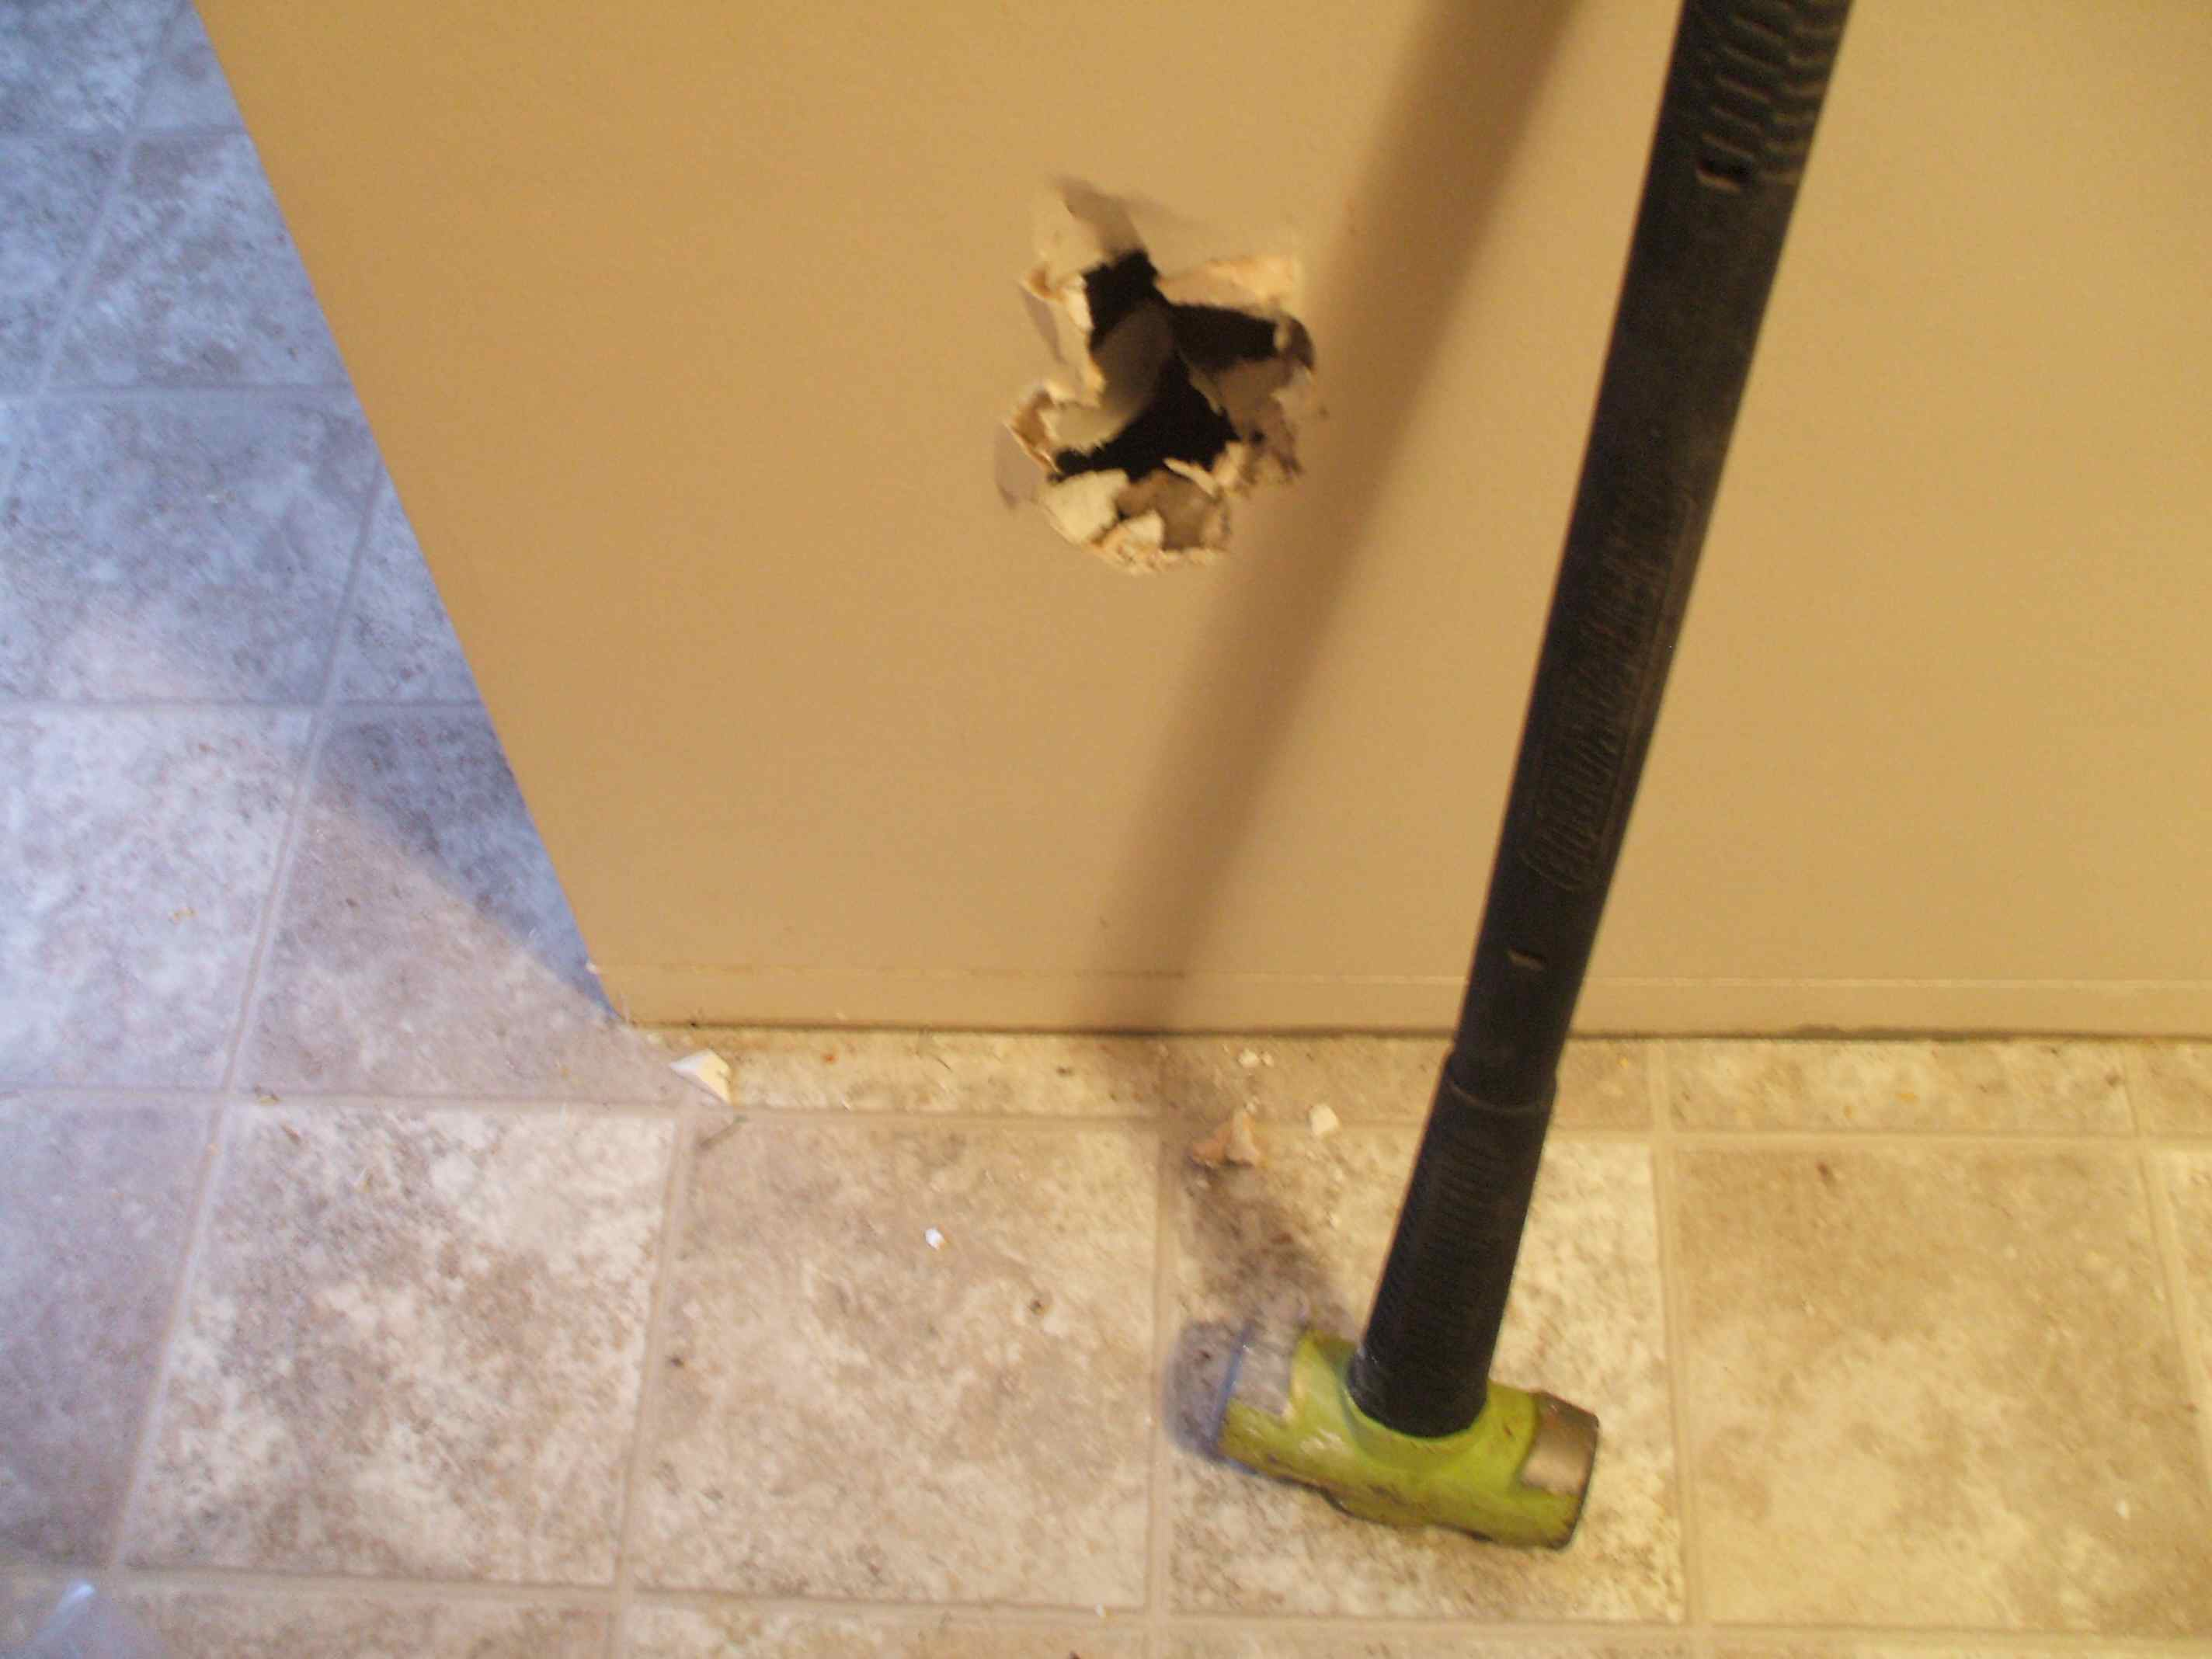 Punching a hole in an interior wall